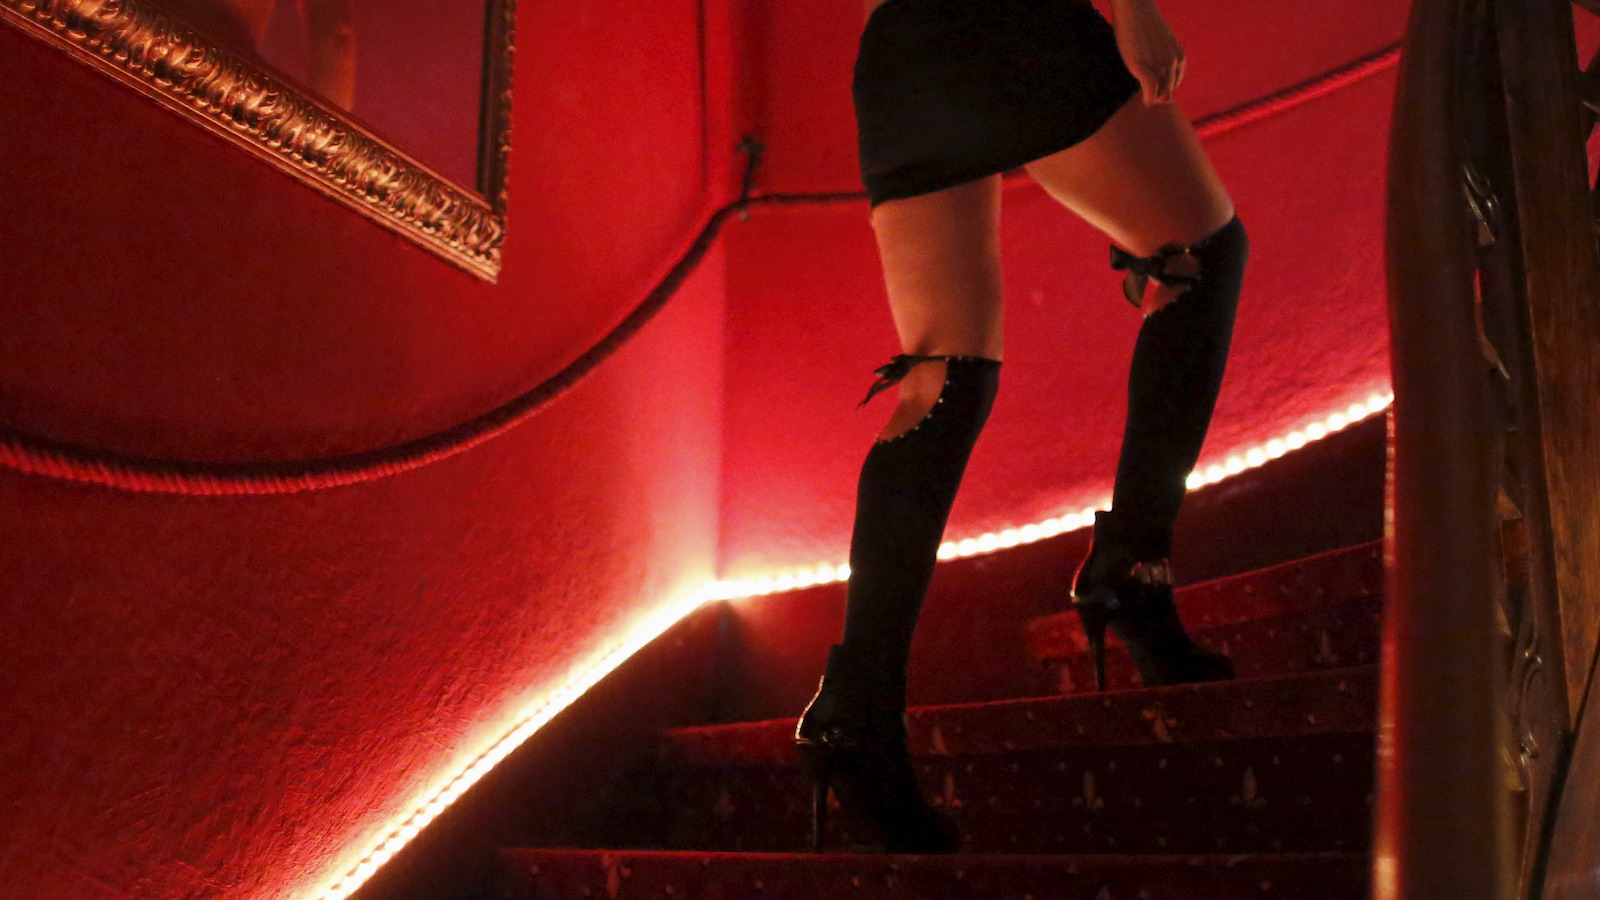 A woman in thigh-high heeled boots and a mini skirt walks up stairs lit with red lights.